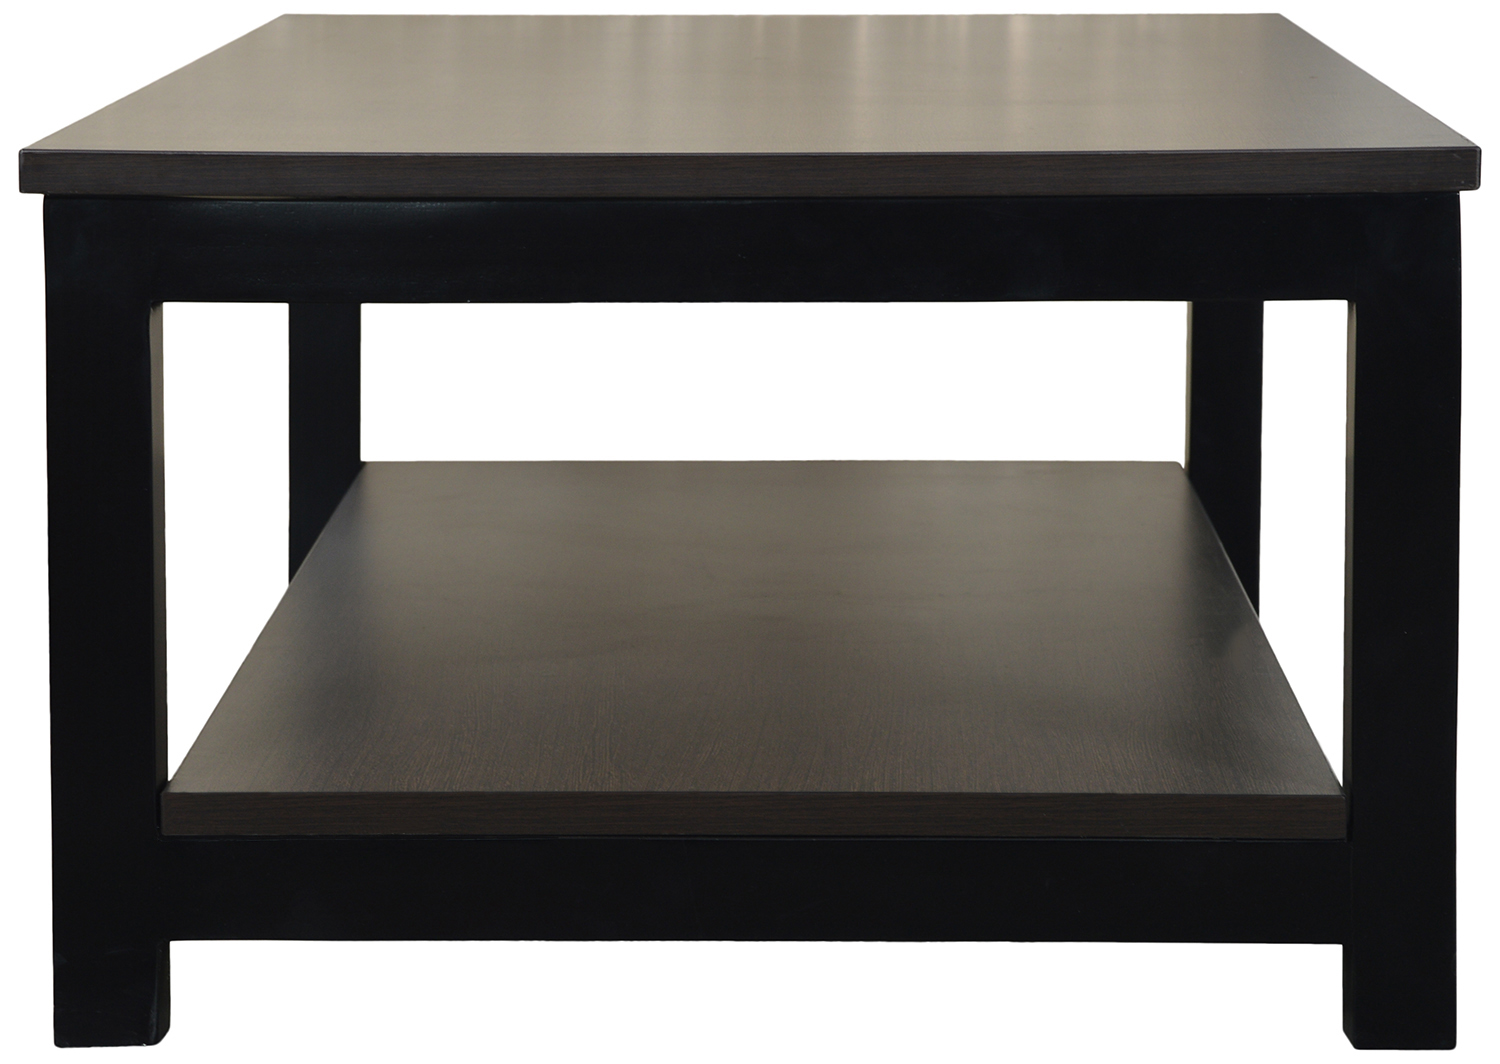 Buy Forzza Patrick Coffee Table Wenge Online In India 91056195